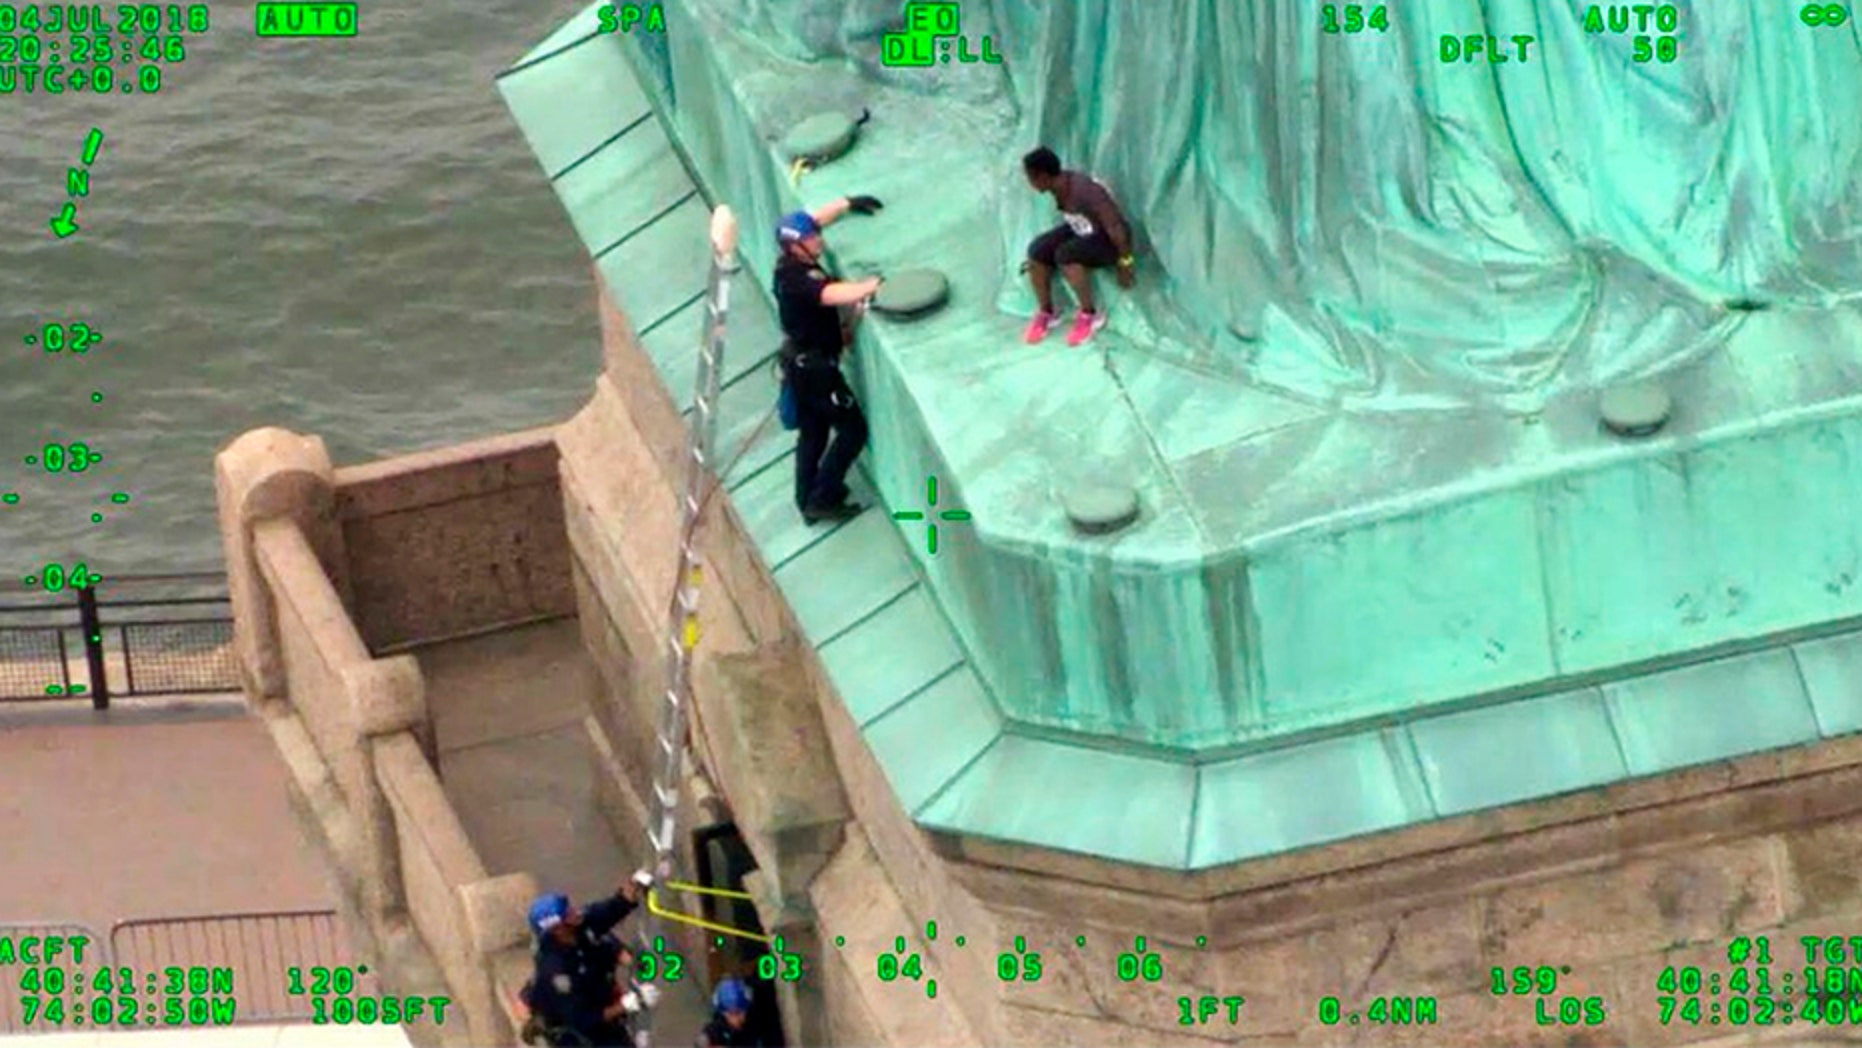 In this July 2018, frame from video provided by the New York City Police Department, members of the NYPD Emergency Service Unit work to safely remove Therese Okoumou, a protester who climbed onto the Statue of Liberty and was charged with misdemeanor trespassing and disorderly conduct. (AP/NYPD)